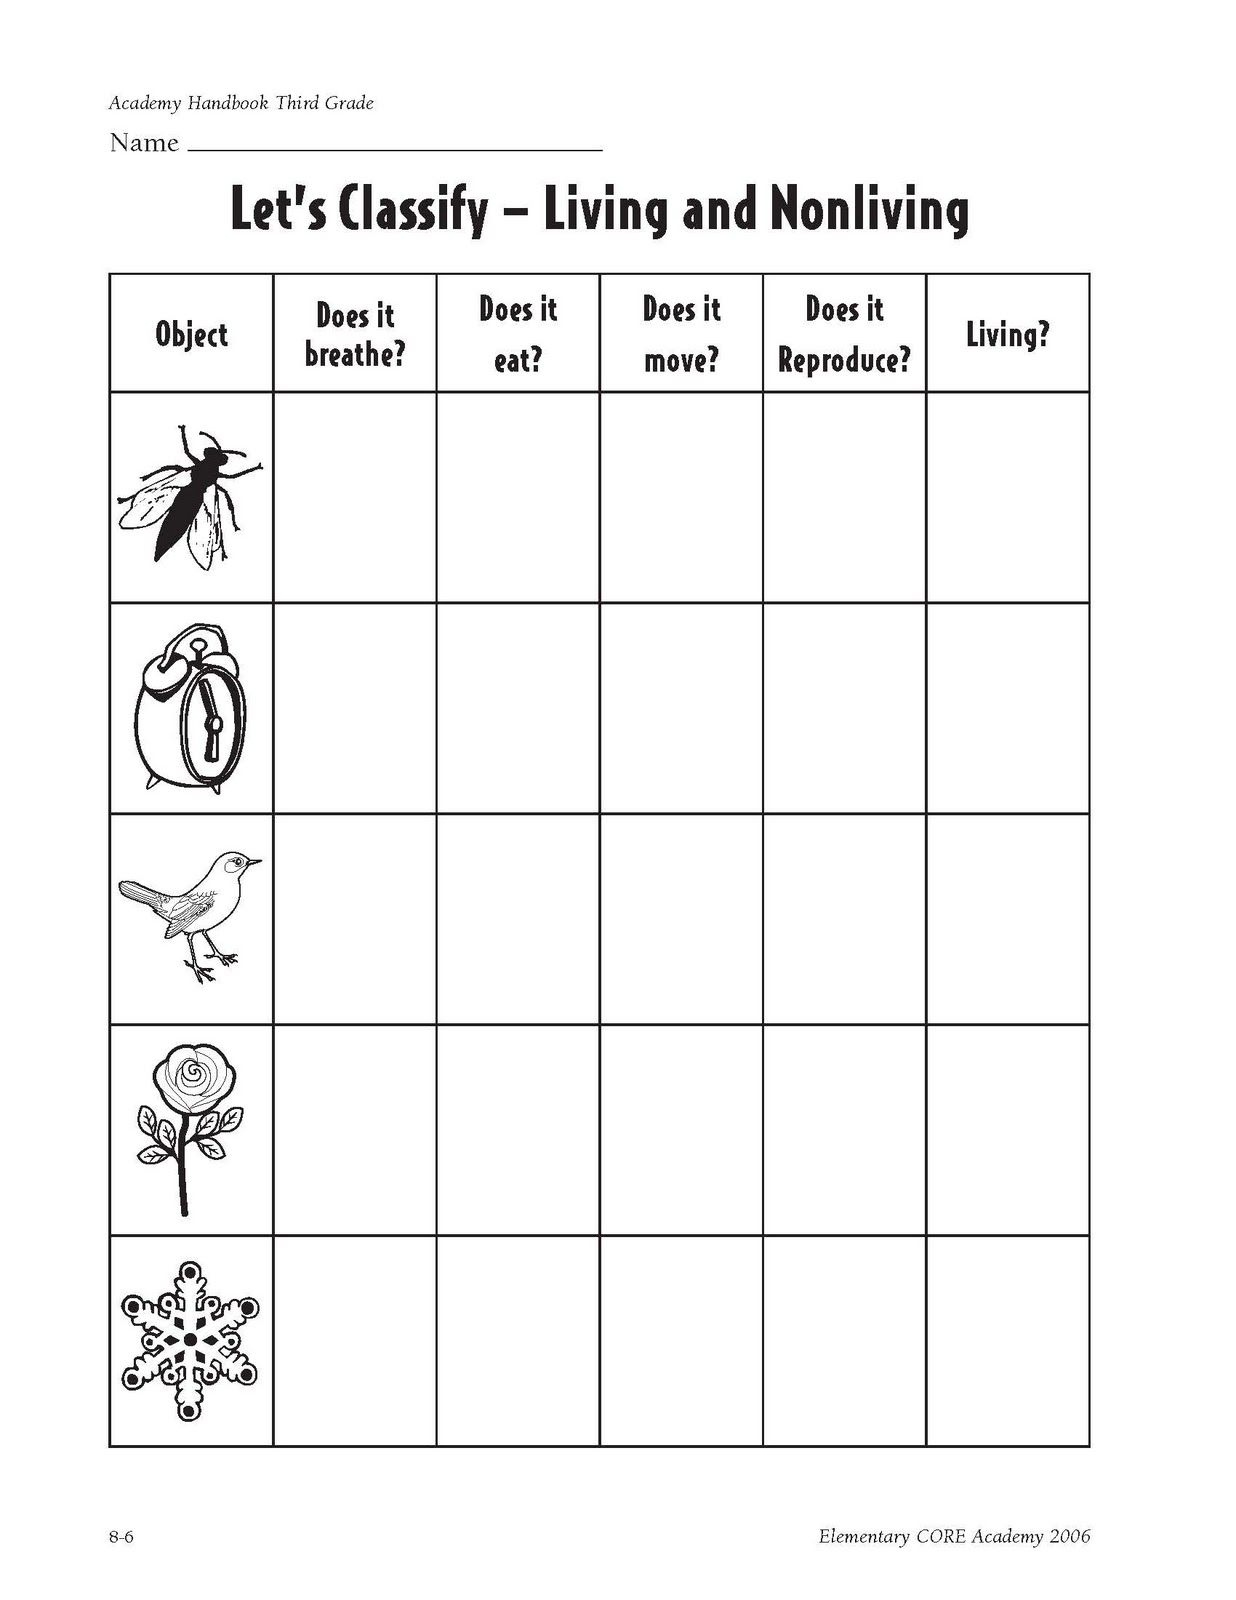 Free Worksheet Living And Nonliving Worksheet living and nonliving things scavenger hunt google search grade characteristics of made cells obtain use energy grow develop reproduce respond